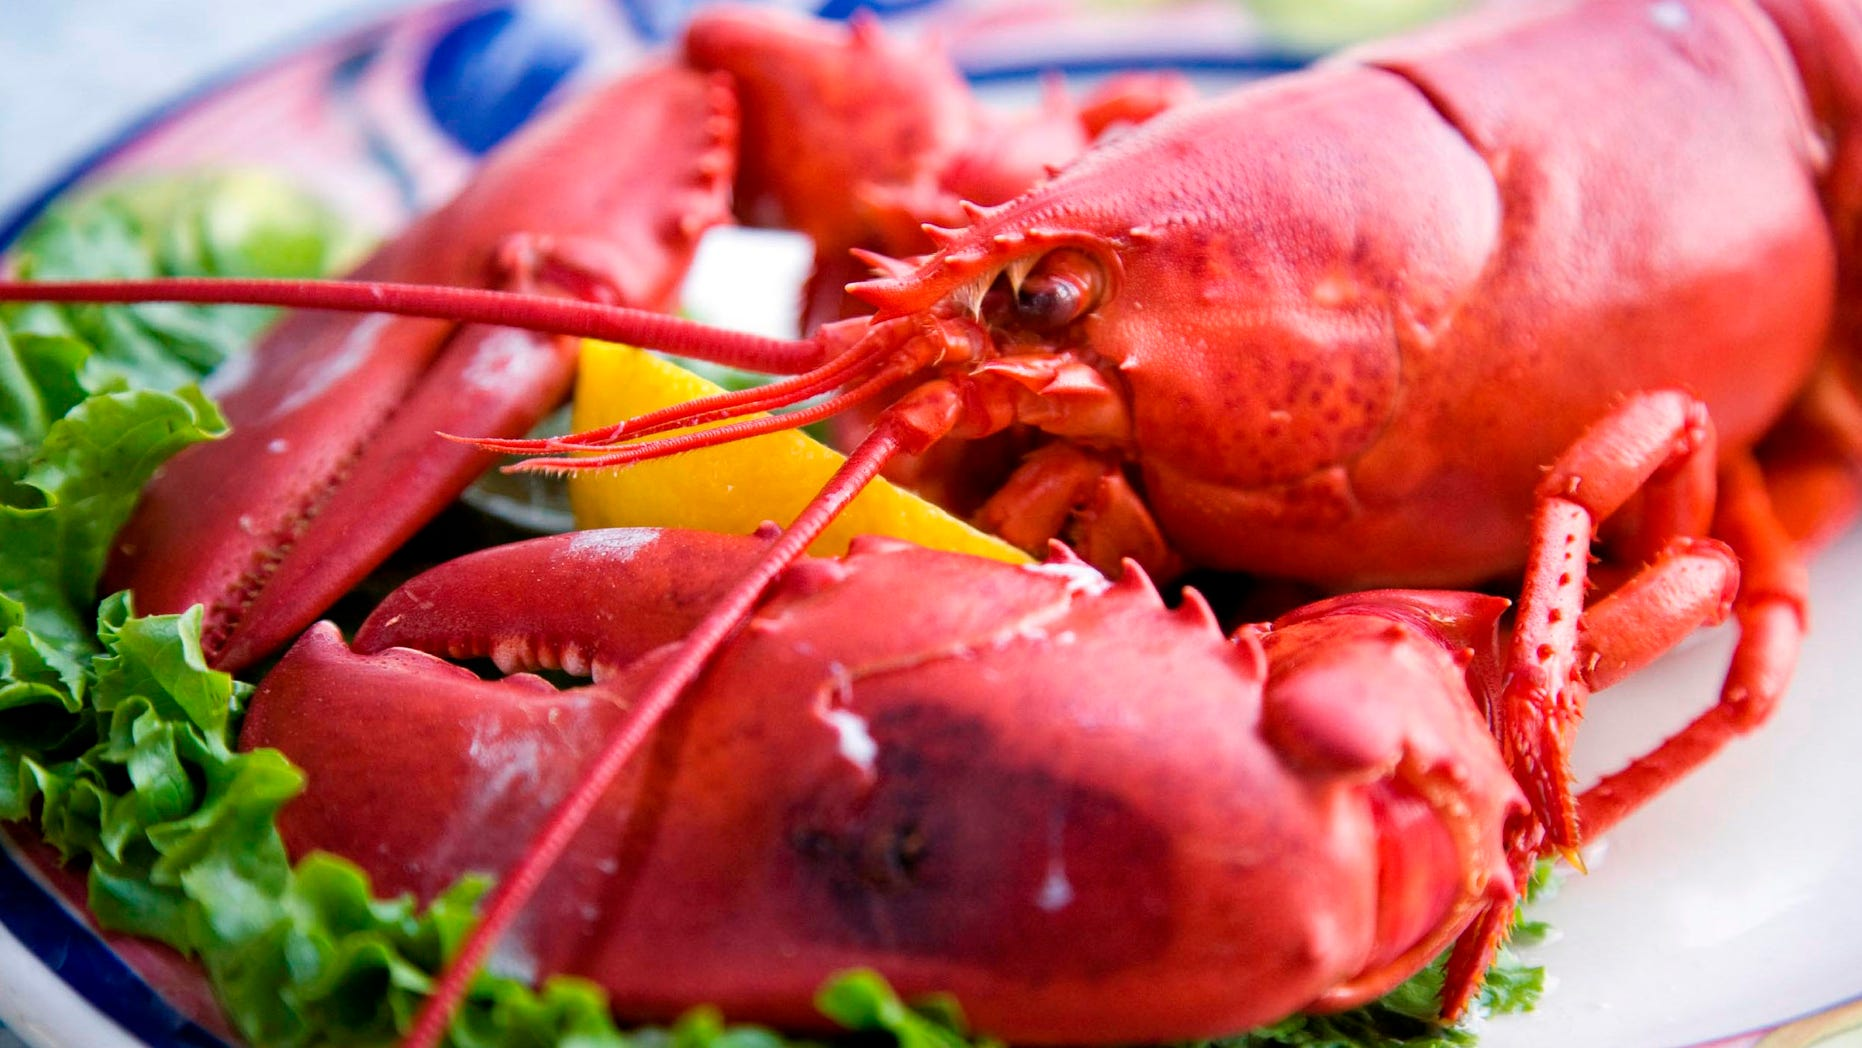 A lobster dinner with a wedge of lemon. Shallow DOF, focus on lobster's head.